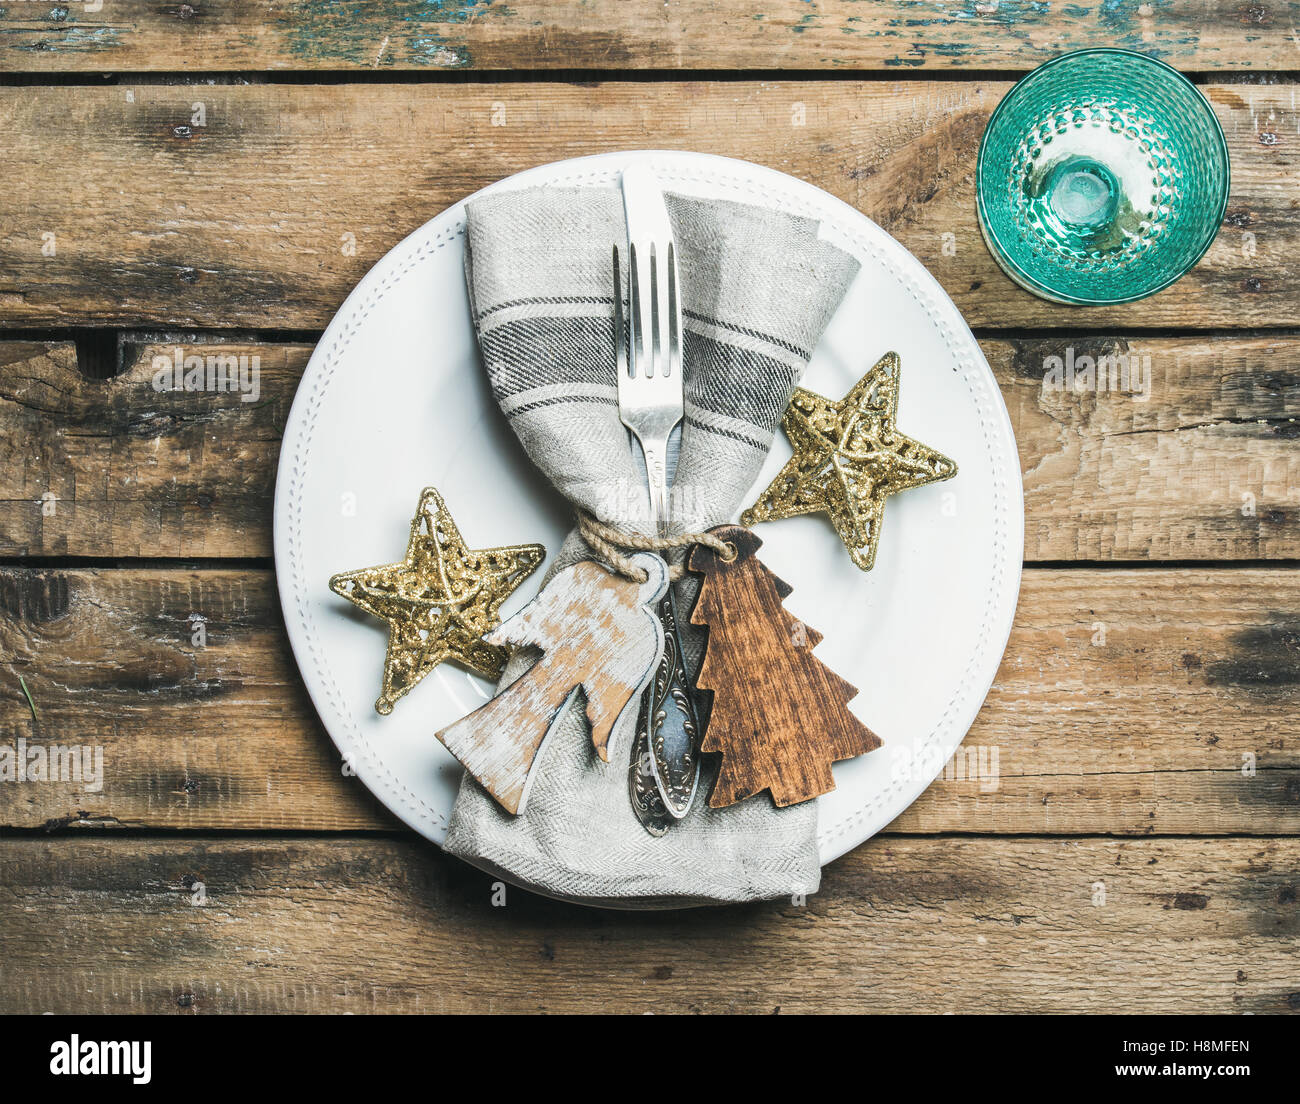 Christmas, New Year holiday table setting over wooden background - Stock Image